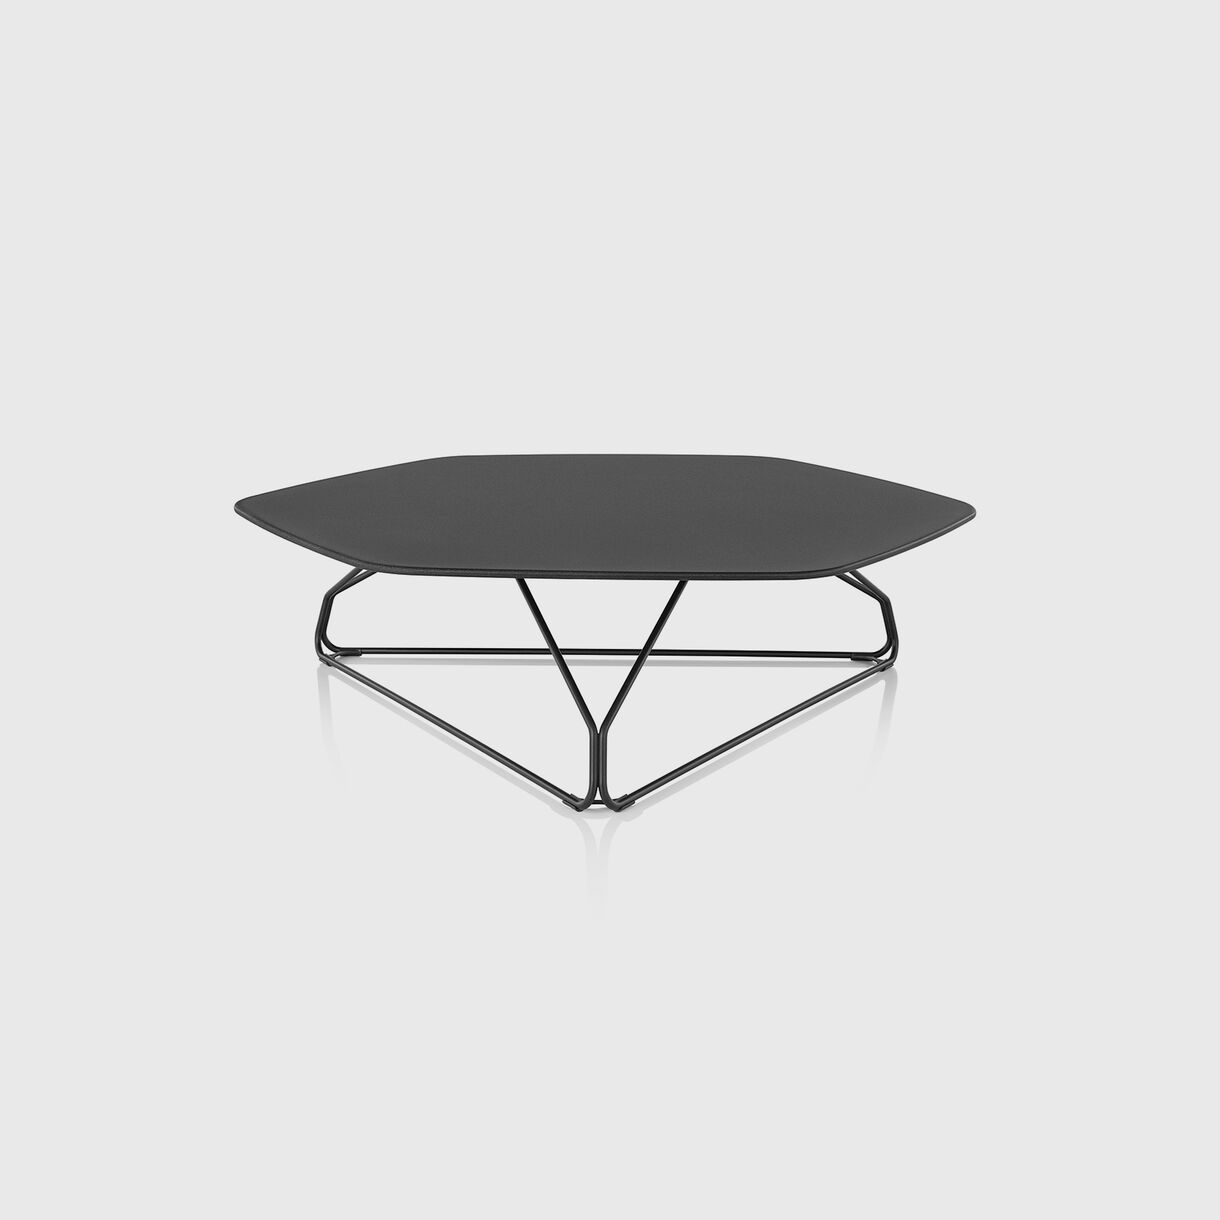 Polygon Wire Table, Low